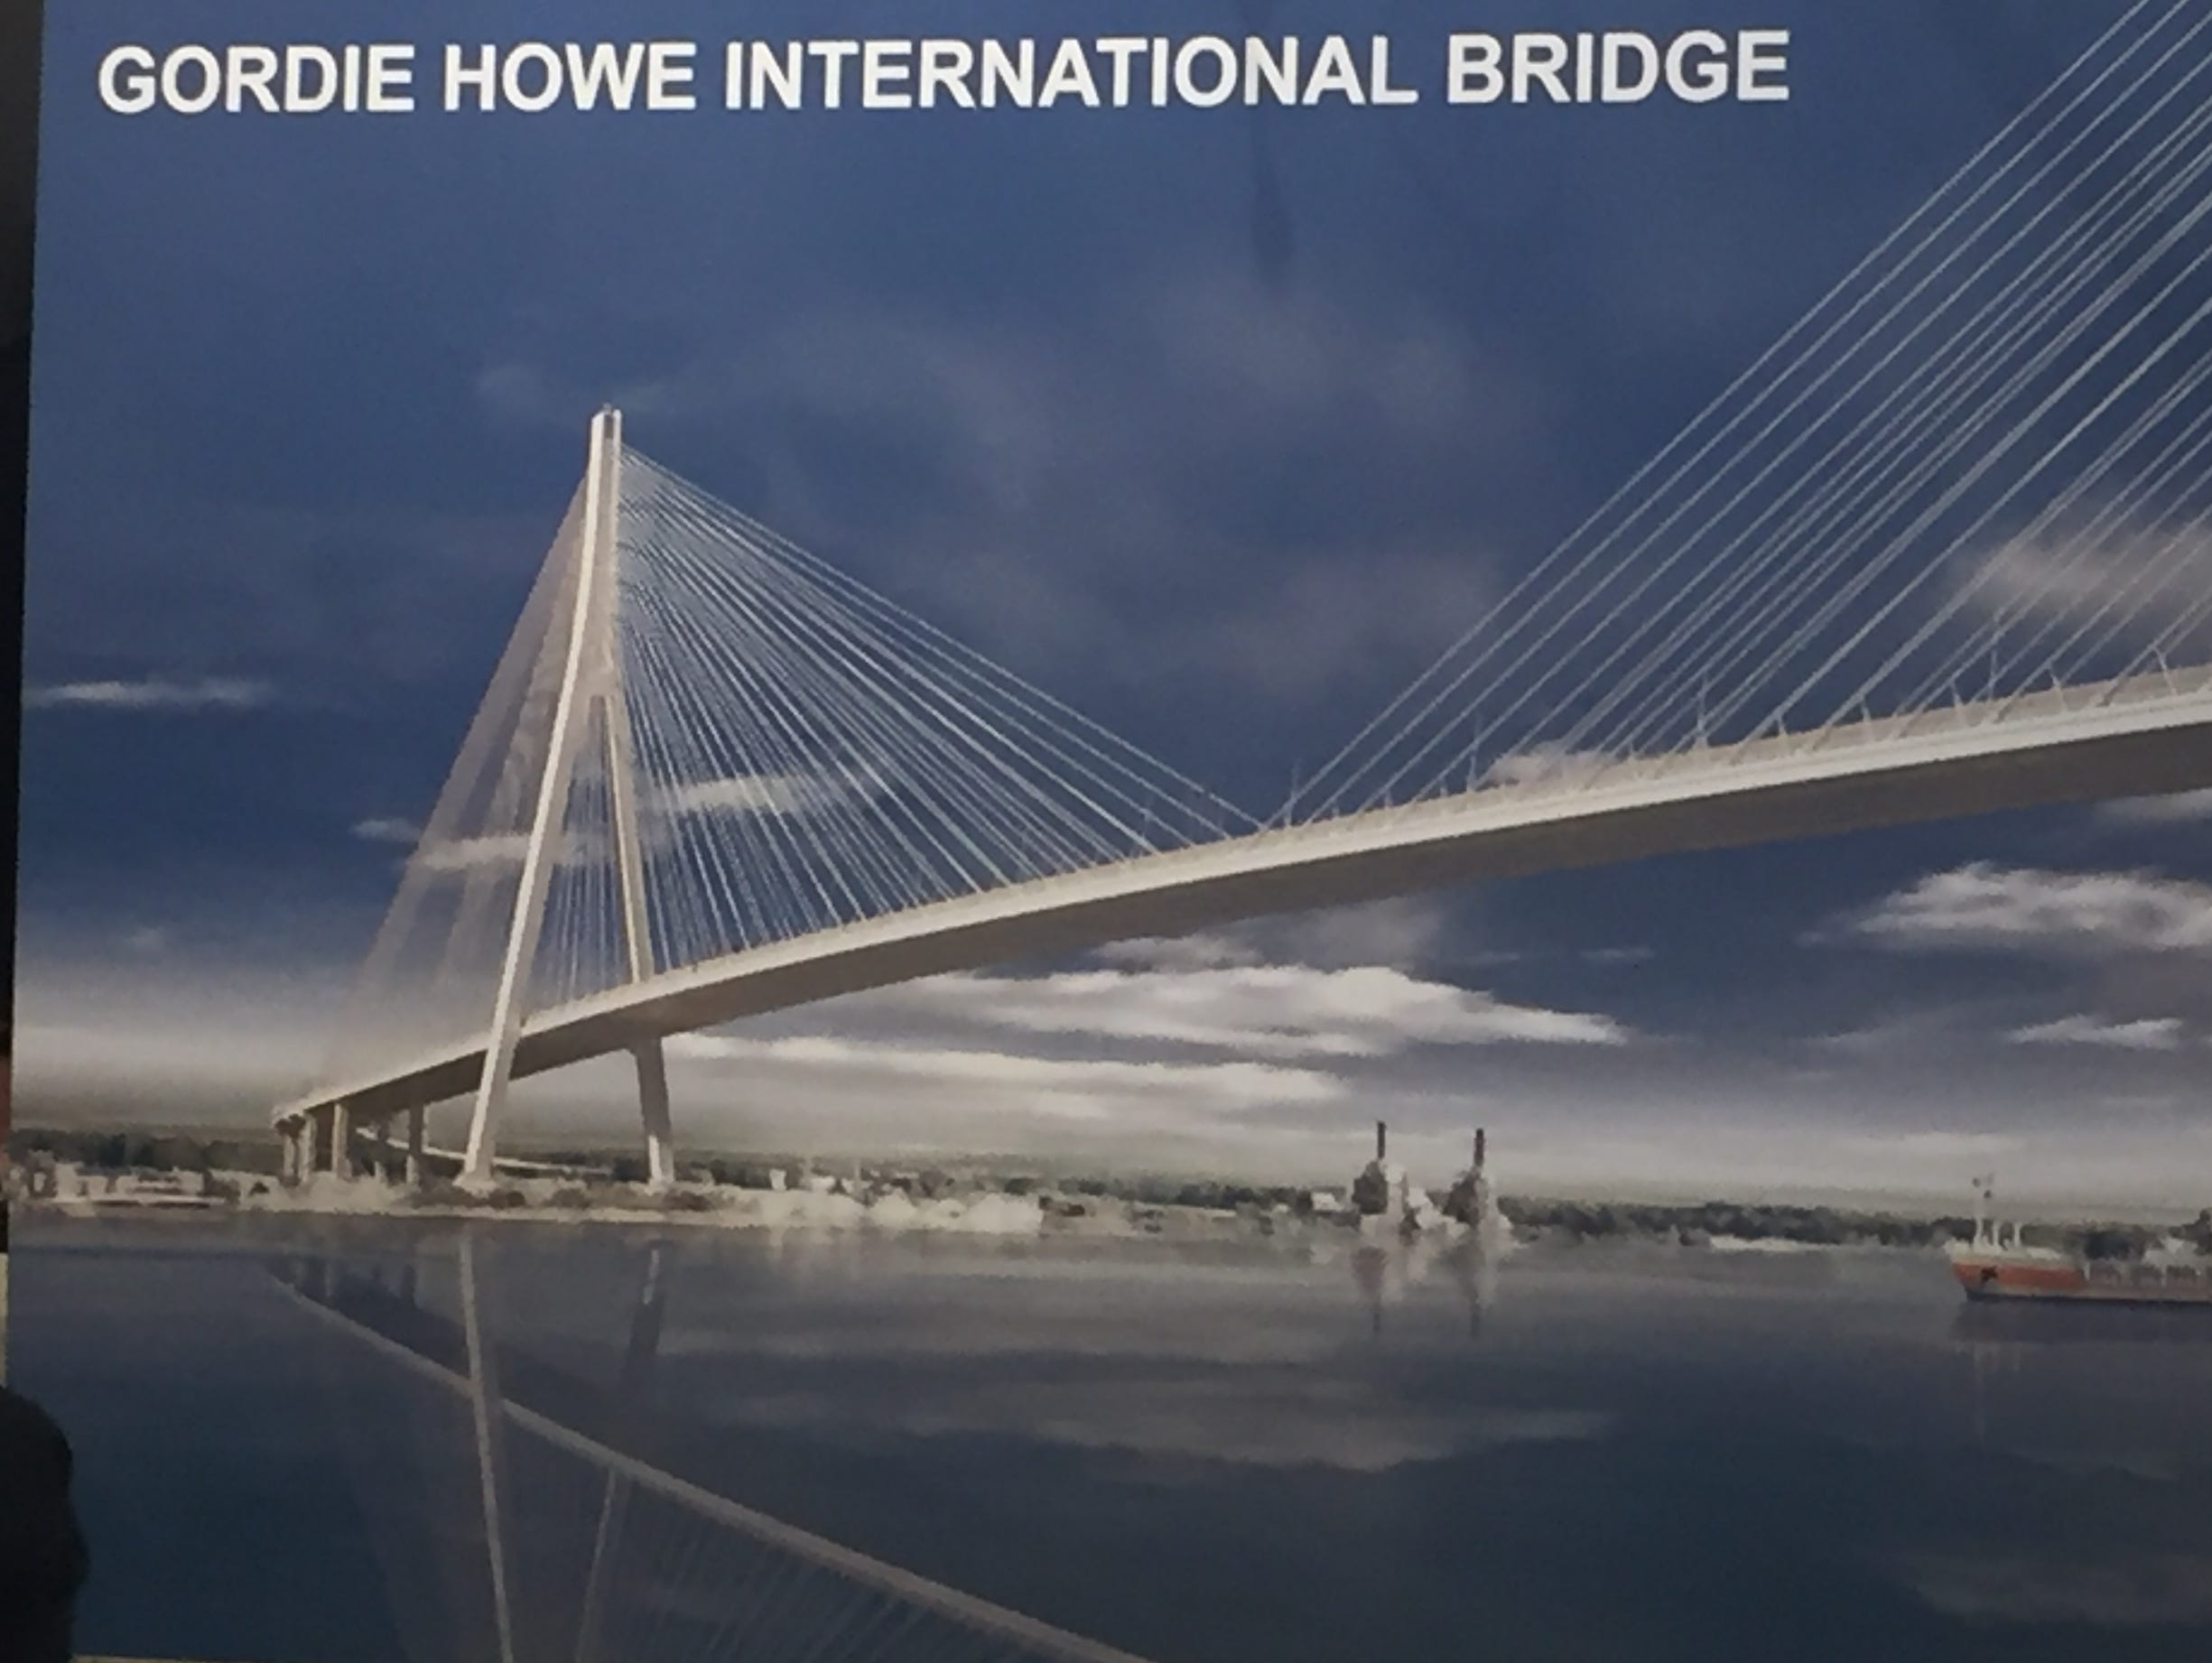 Canadian World Breaking News And Worthy Hidden Wiring Inwall Cable Concealment Mississauga Toronto Oakville Detroit Free Press Bridging North America Chosen To Build The Gordie Howe Bridge